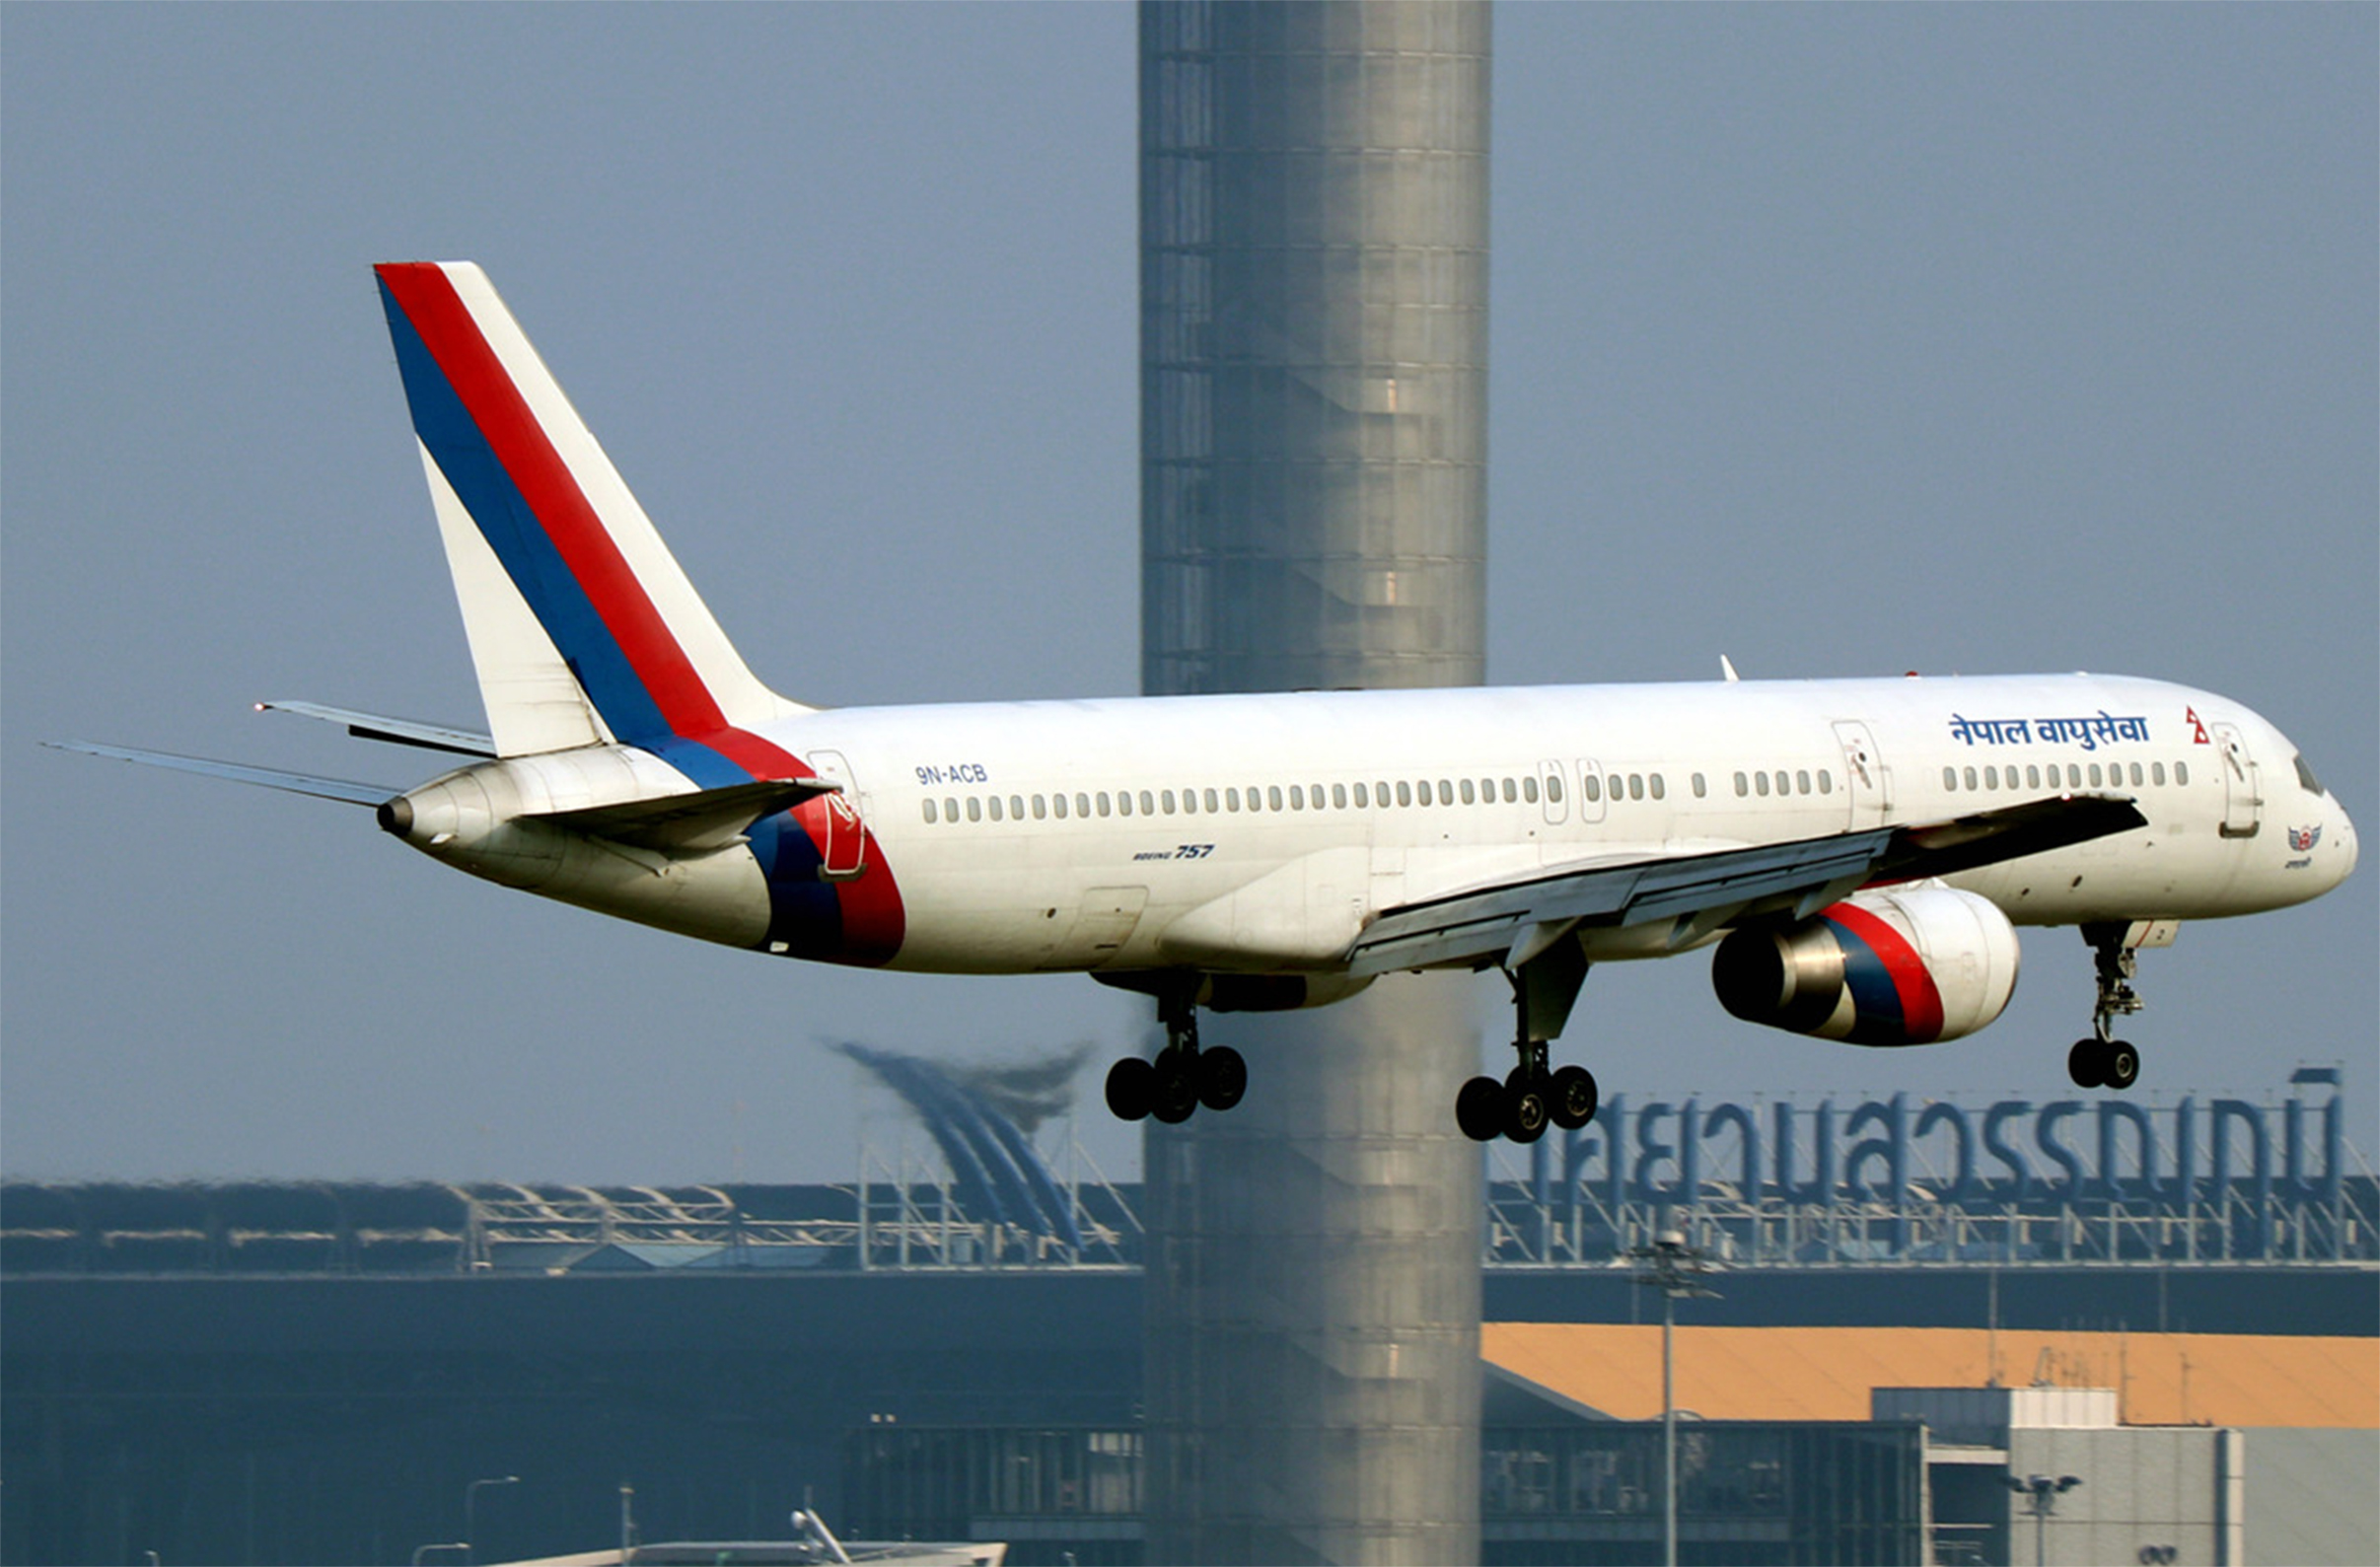 Nepal Airlines to say bye bye to its last Boeing 757